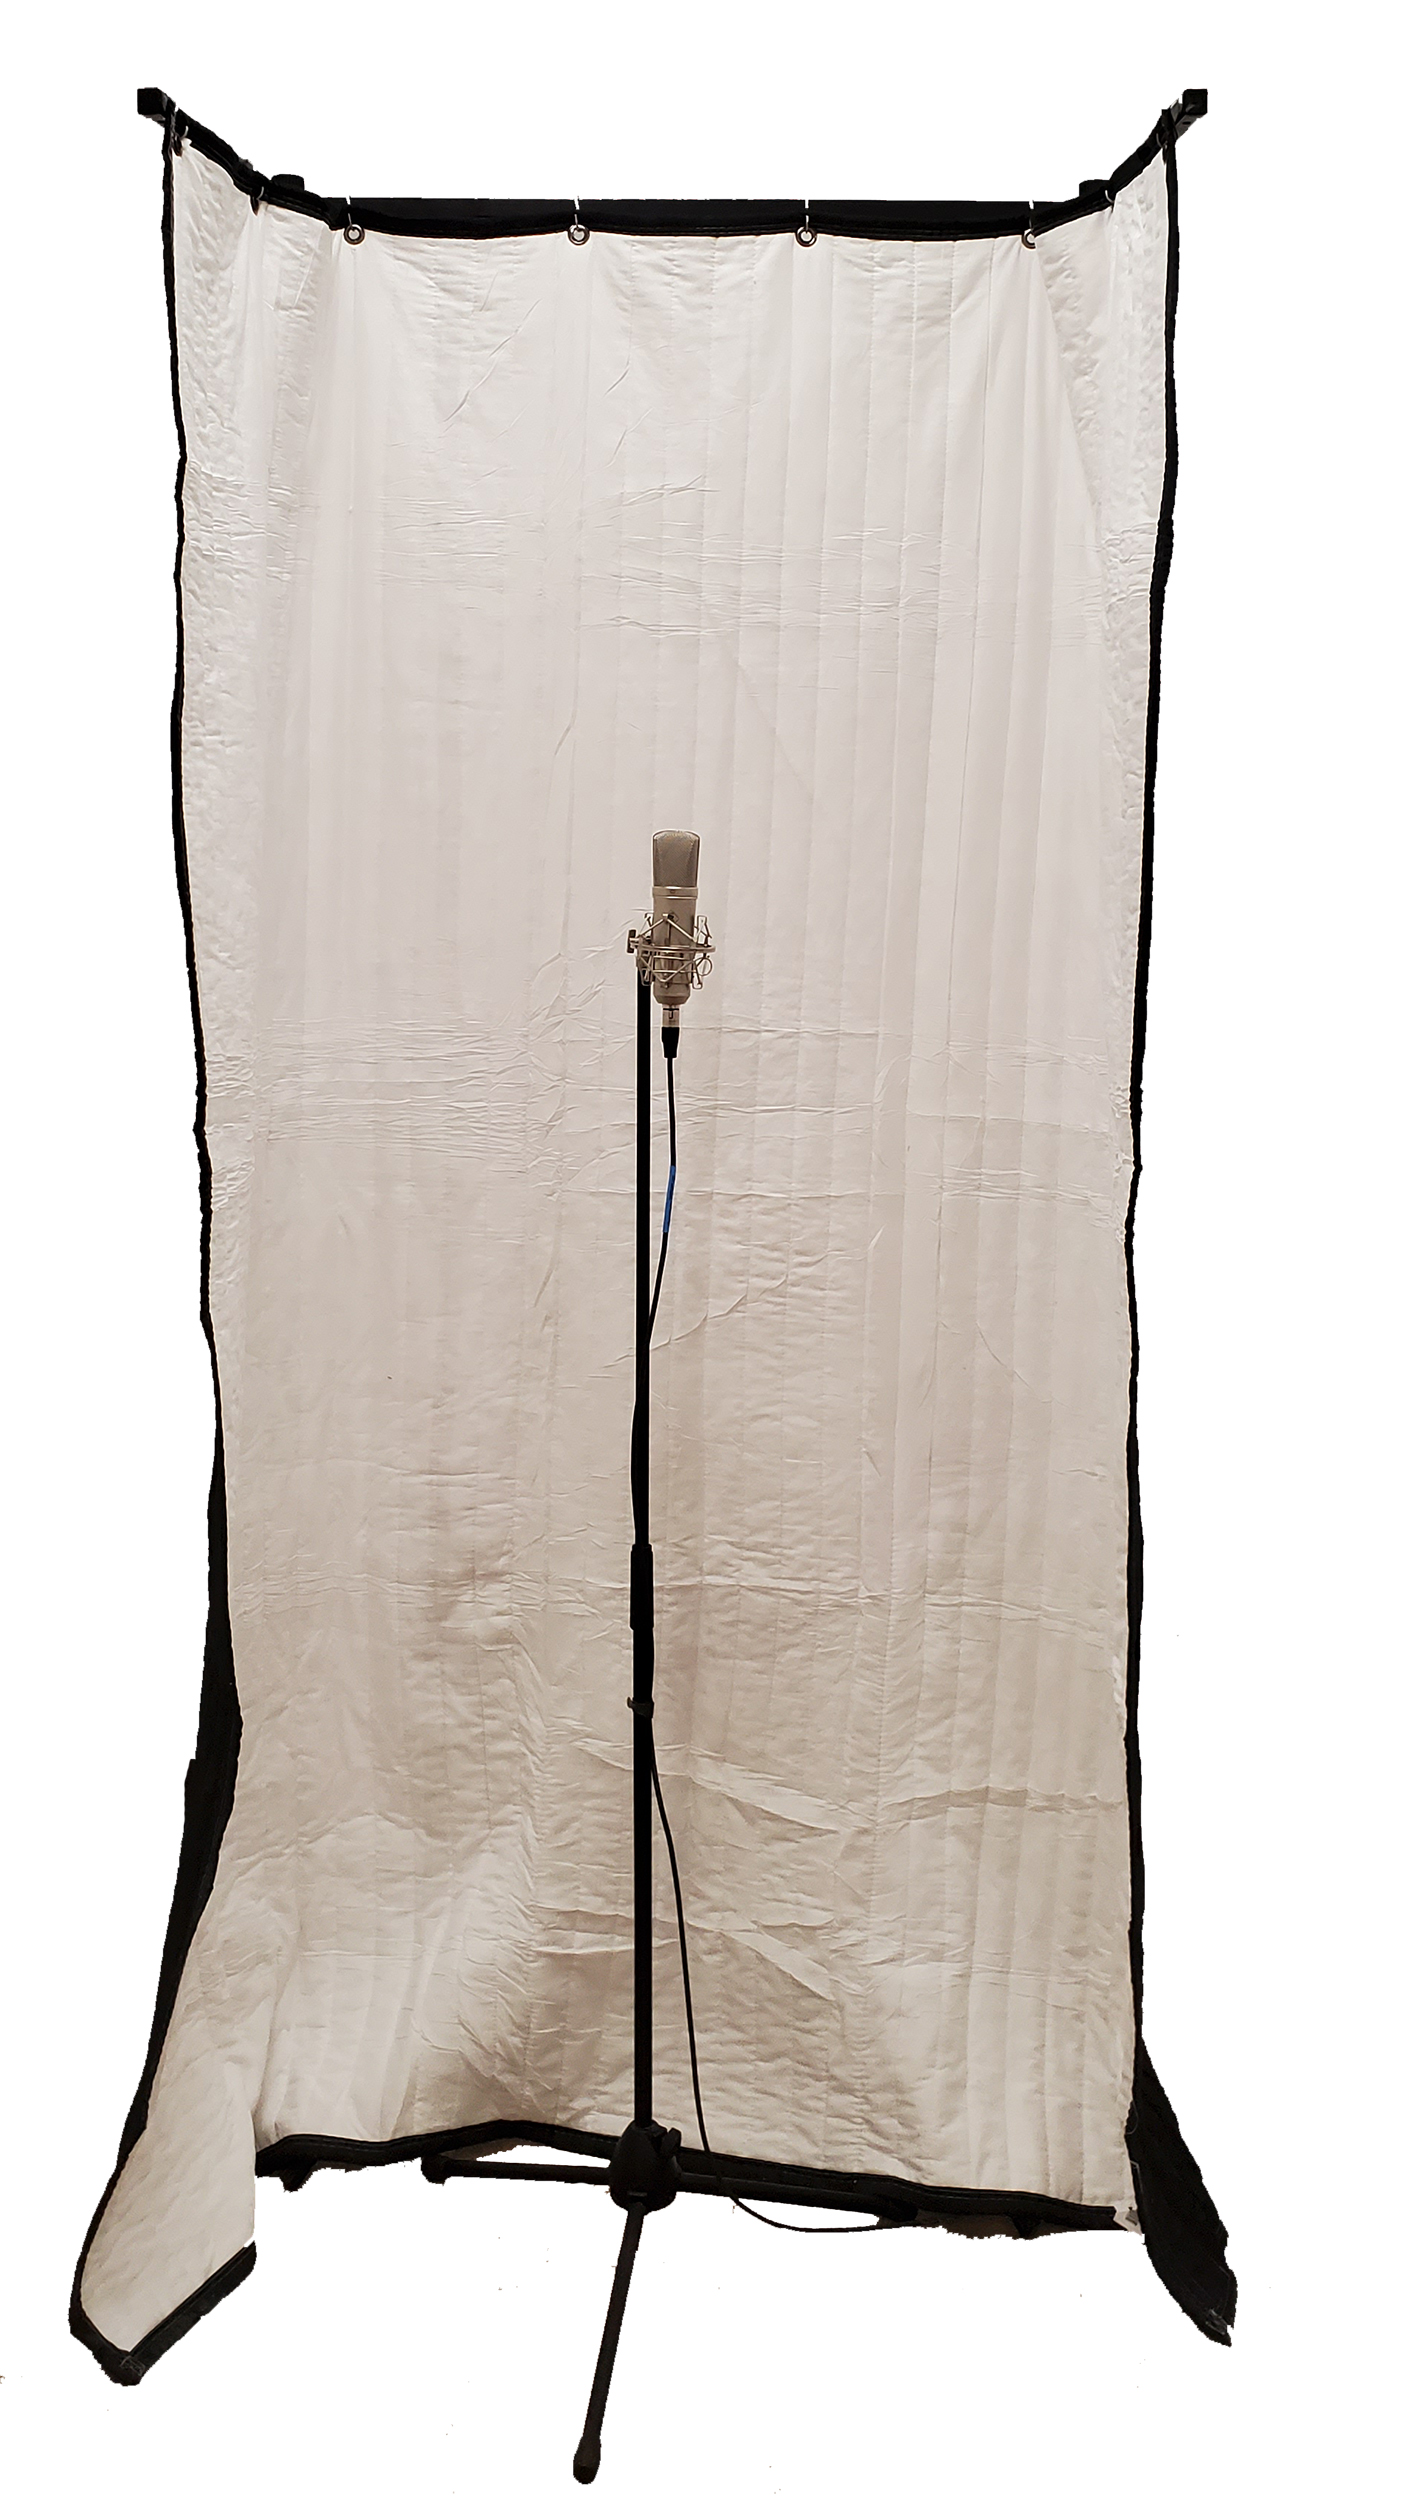 FlexTee Stand for acoustic room treatment with Microphone